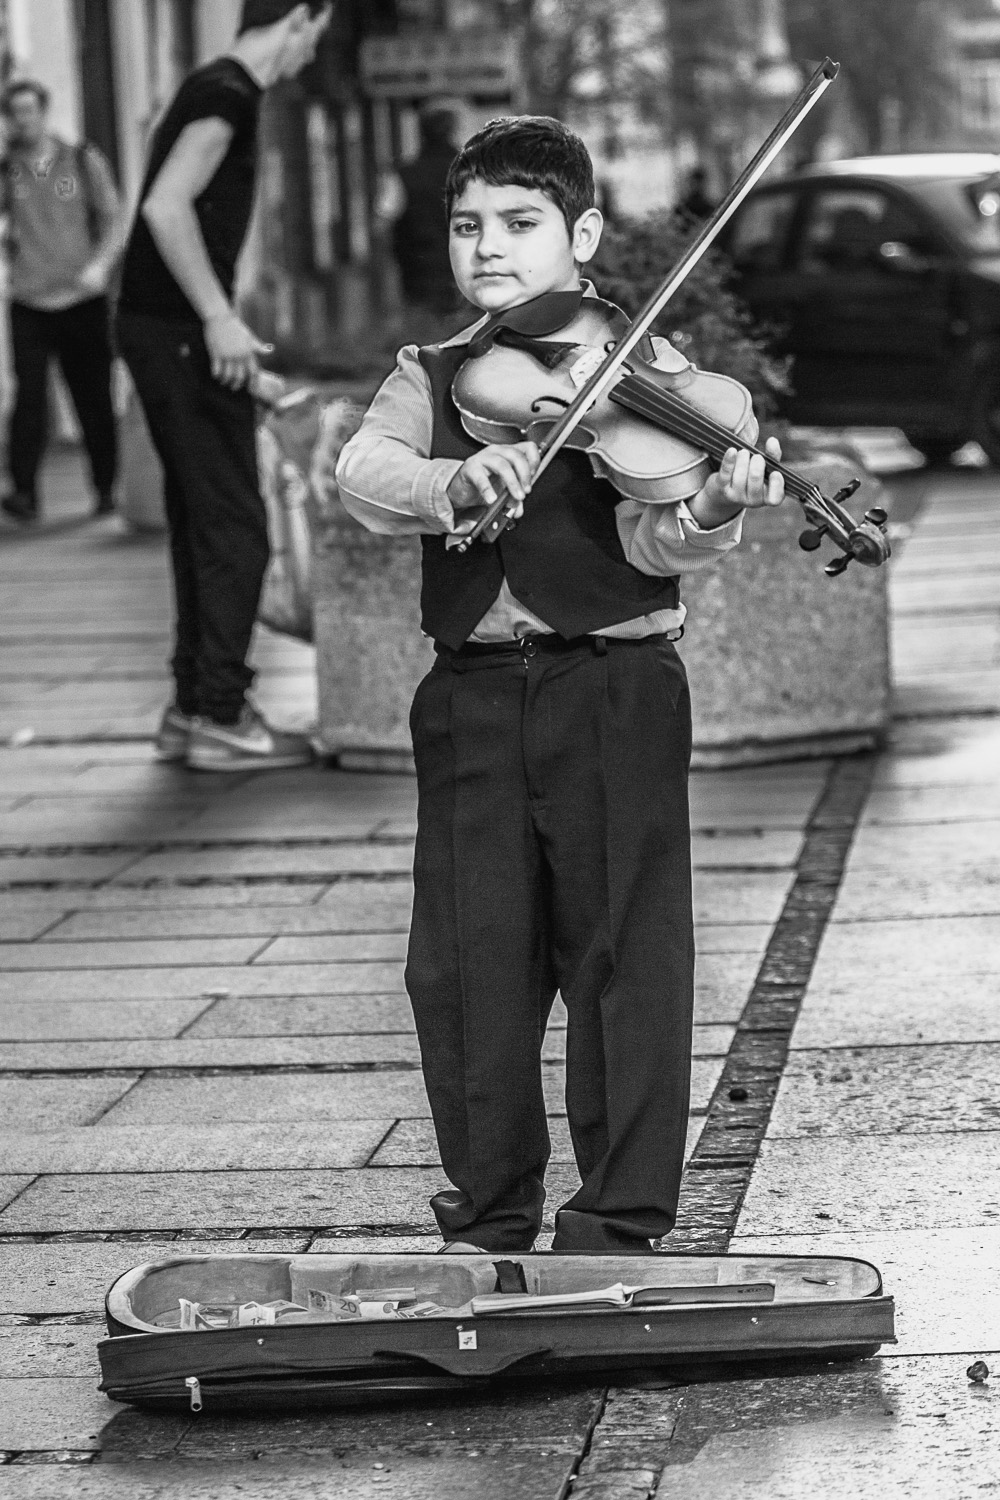 a young street musician in belgrade, serbia